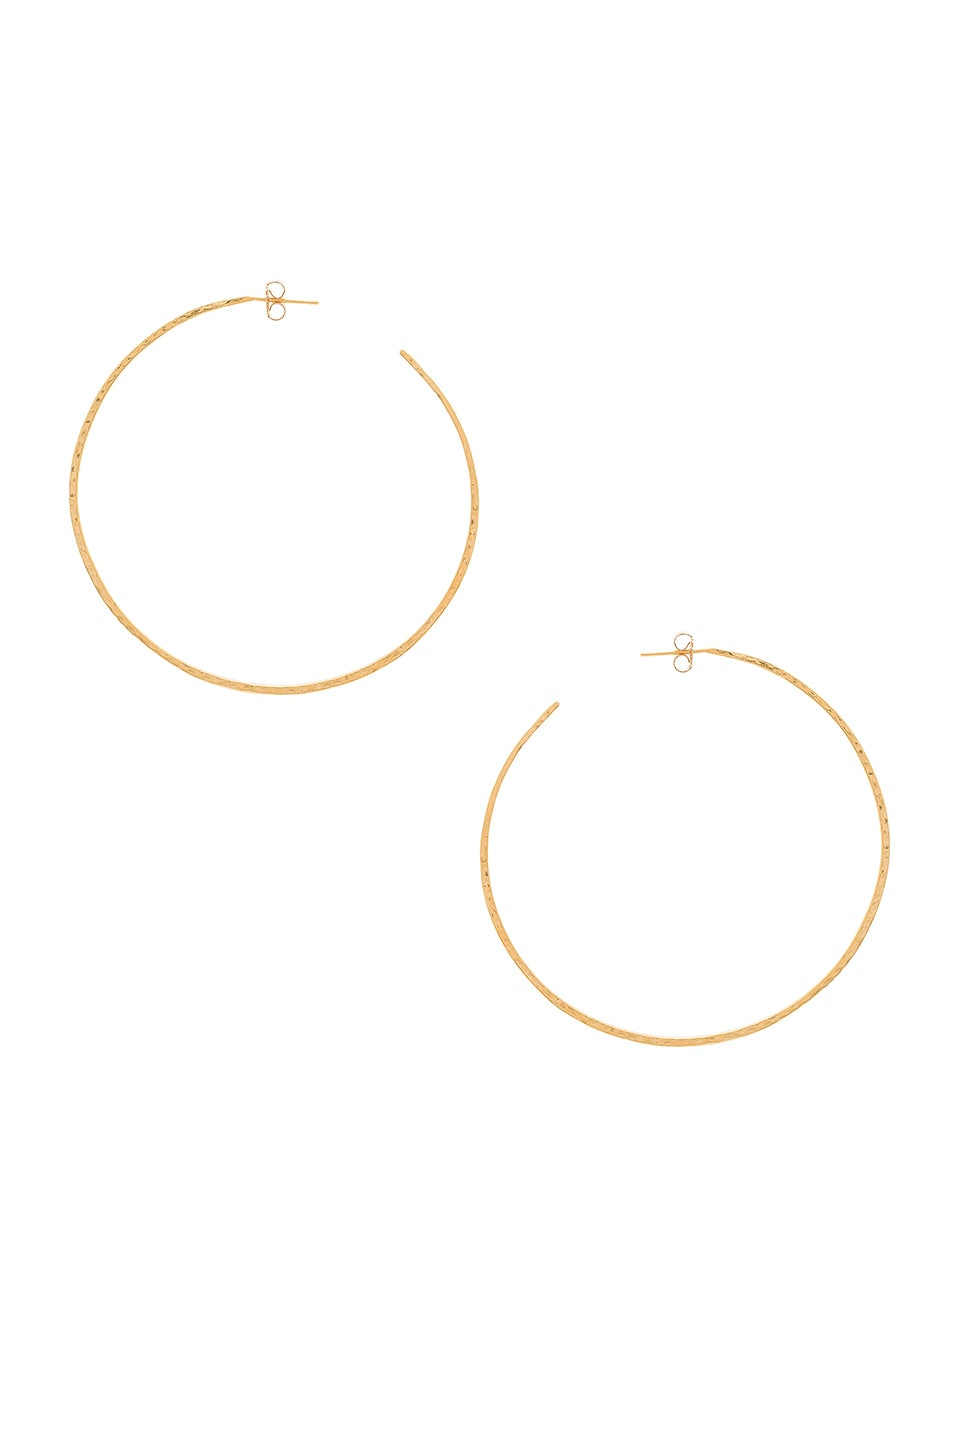 Natalie B Jewelry Classico Grande Hoops in Gold